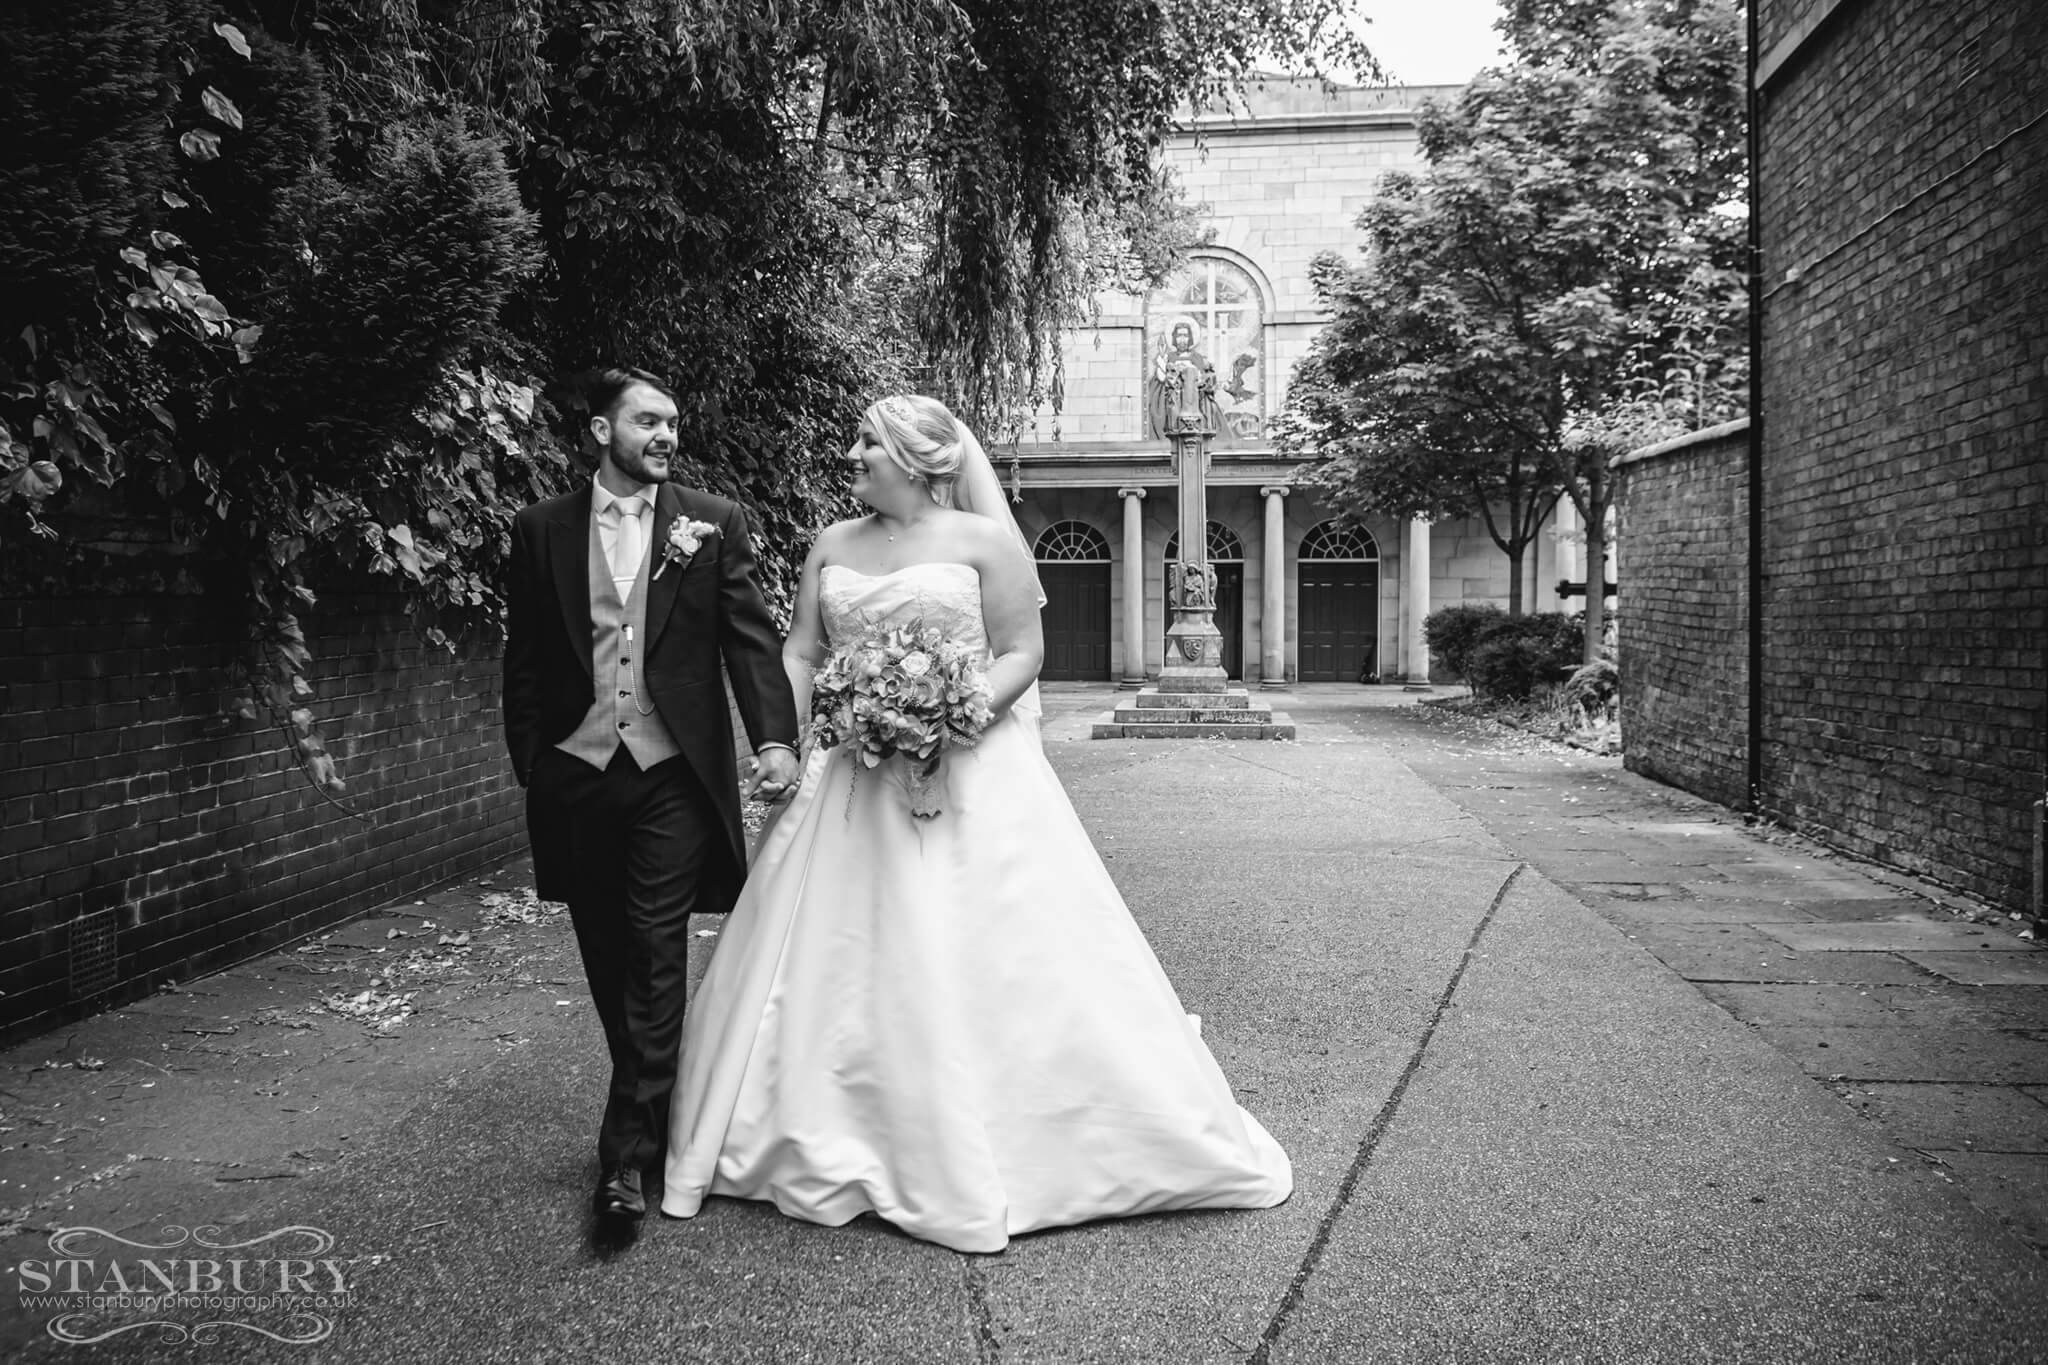 best-lancashire-wedding-photographers-stanbury-photography-021